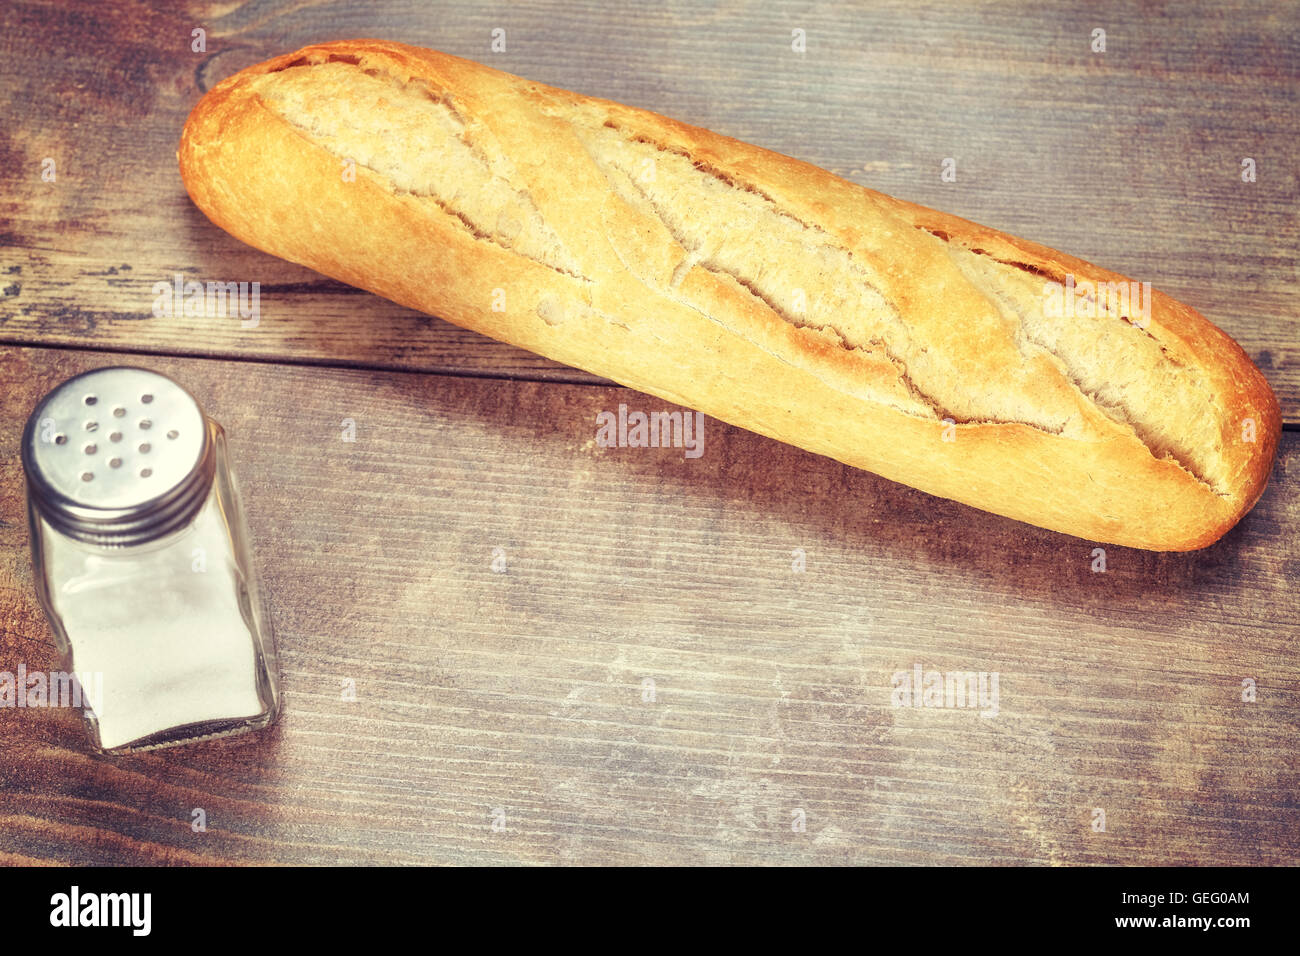 Vintage toned fresh baguette on wooden table, close up - Stock Image